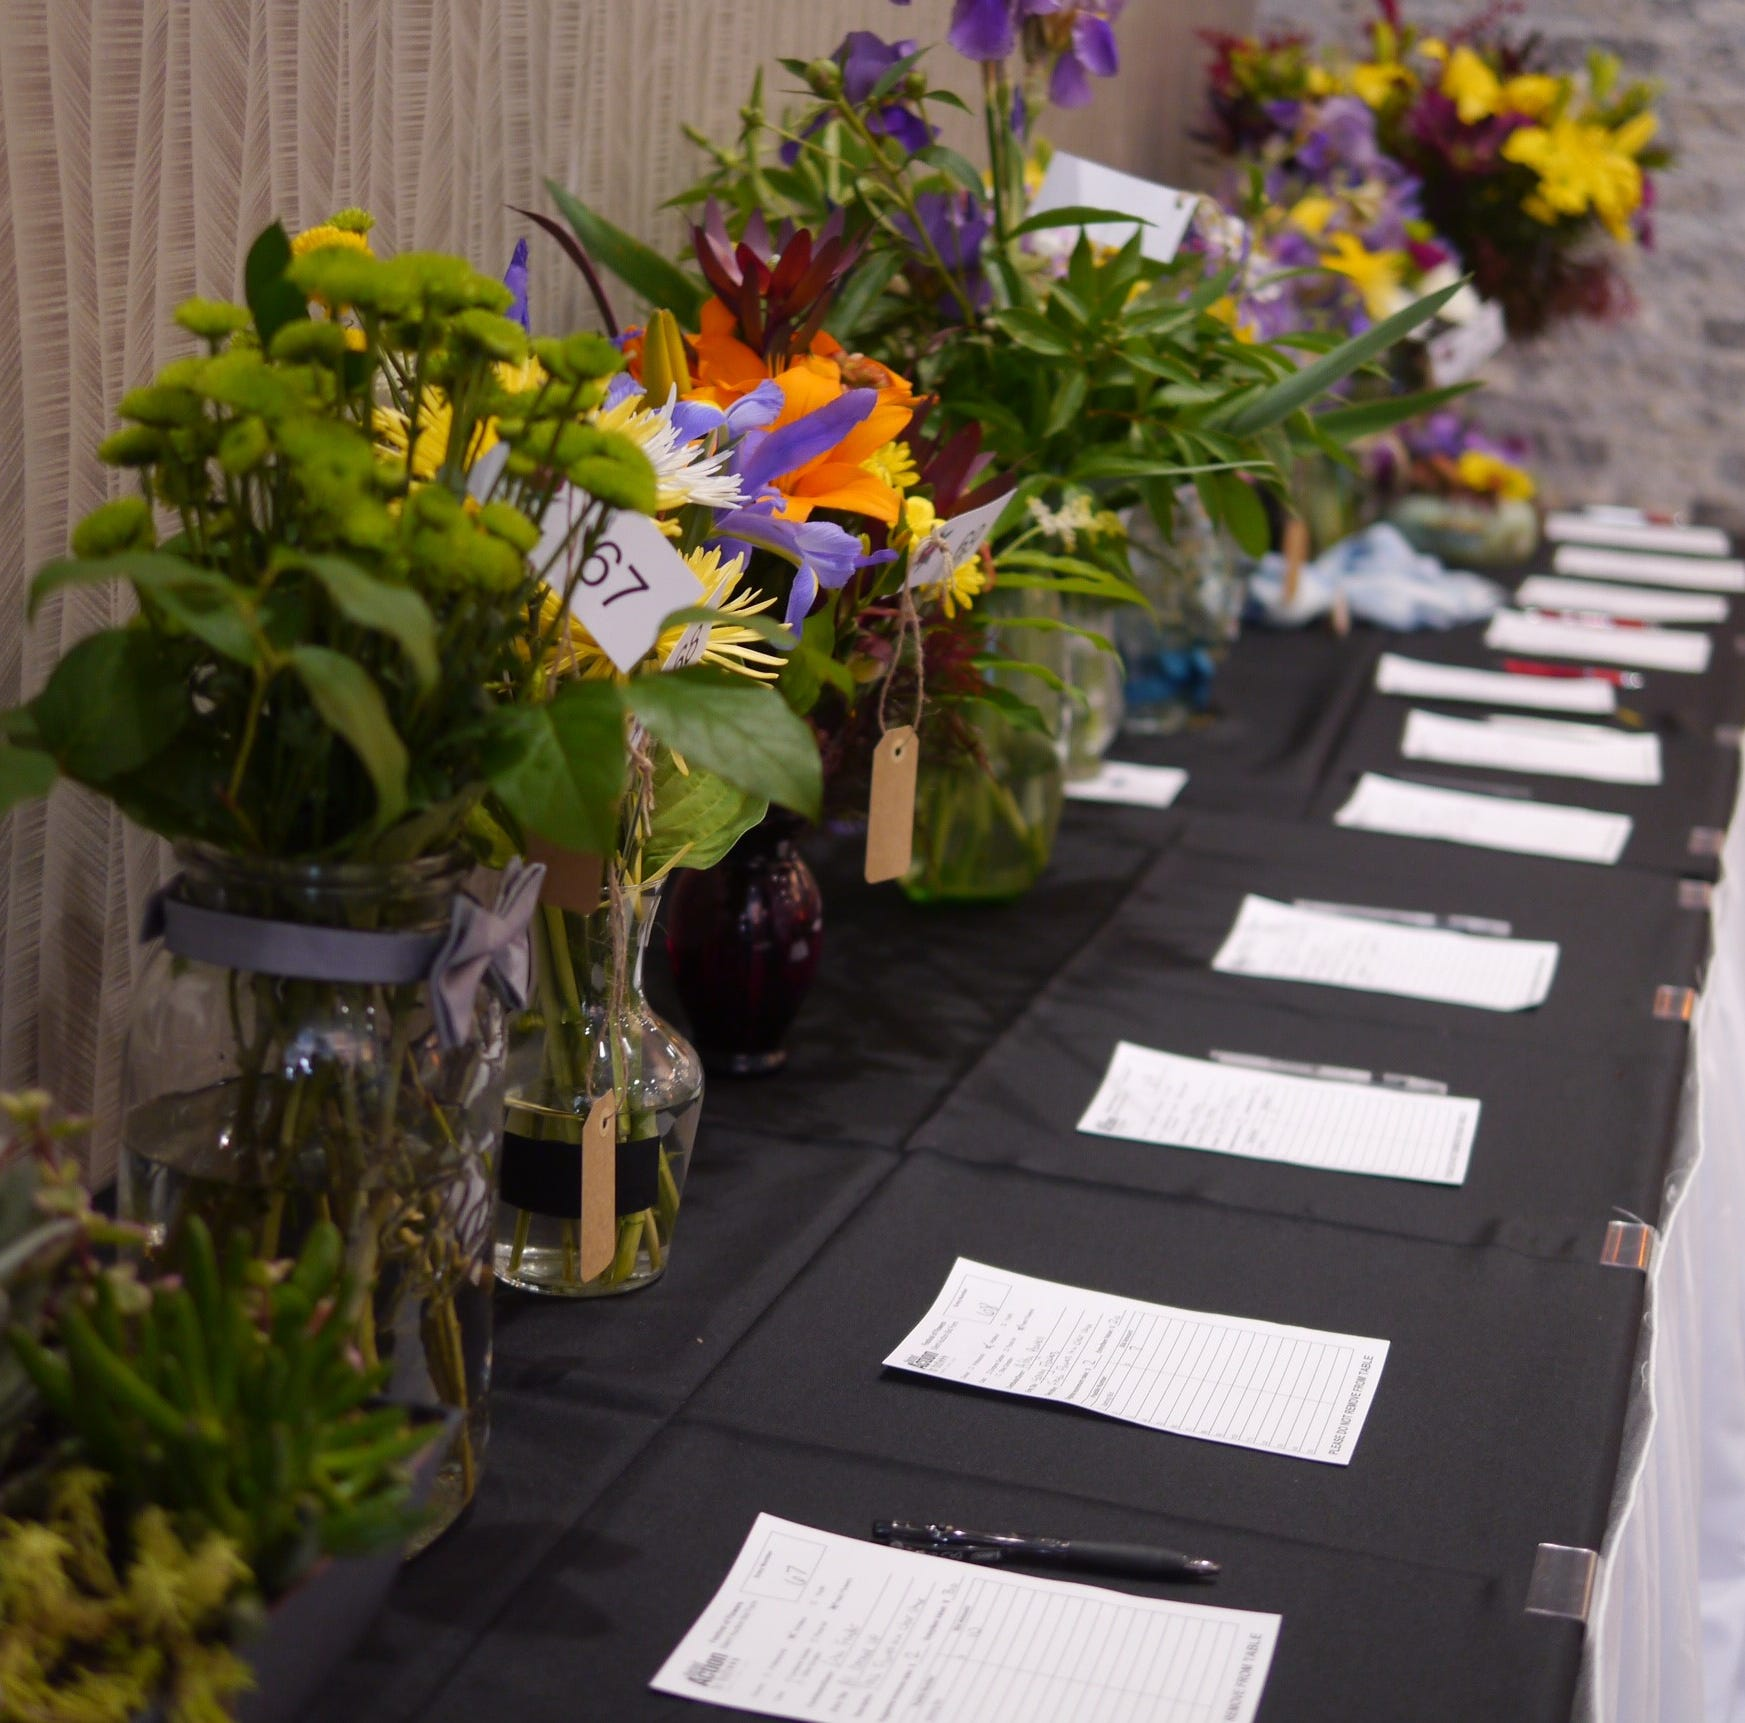 Festival of Flowers set to bloom at The Graduate